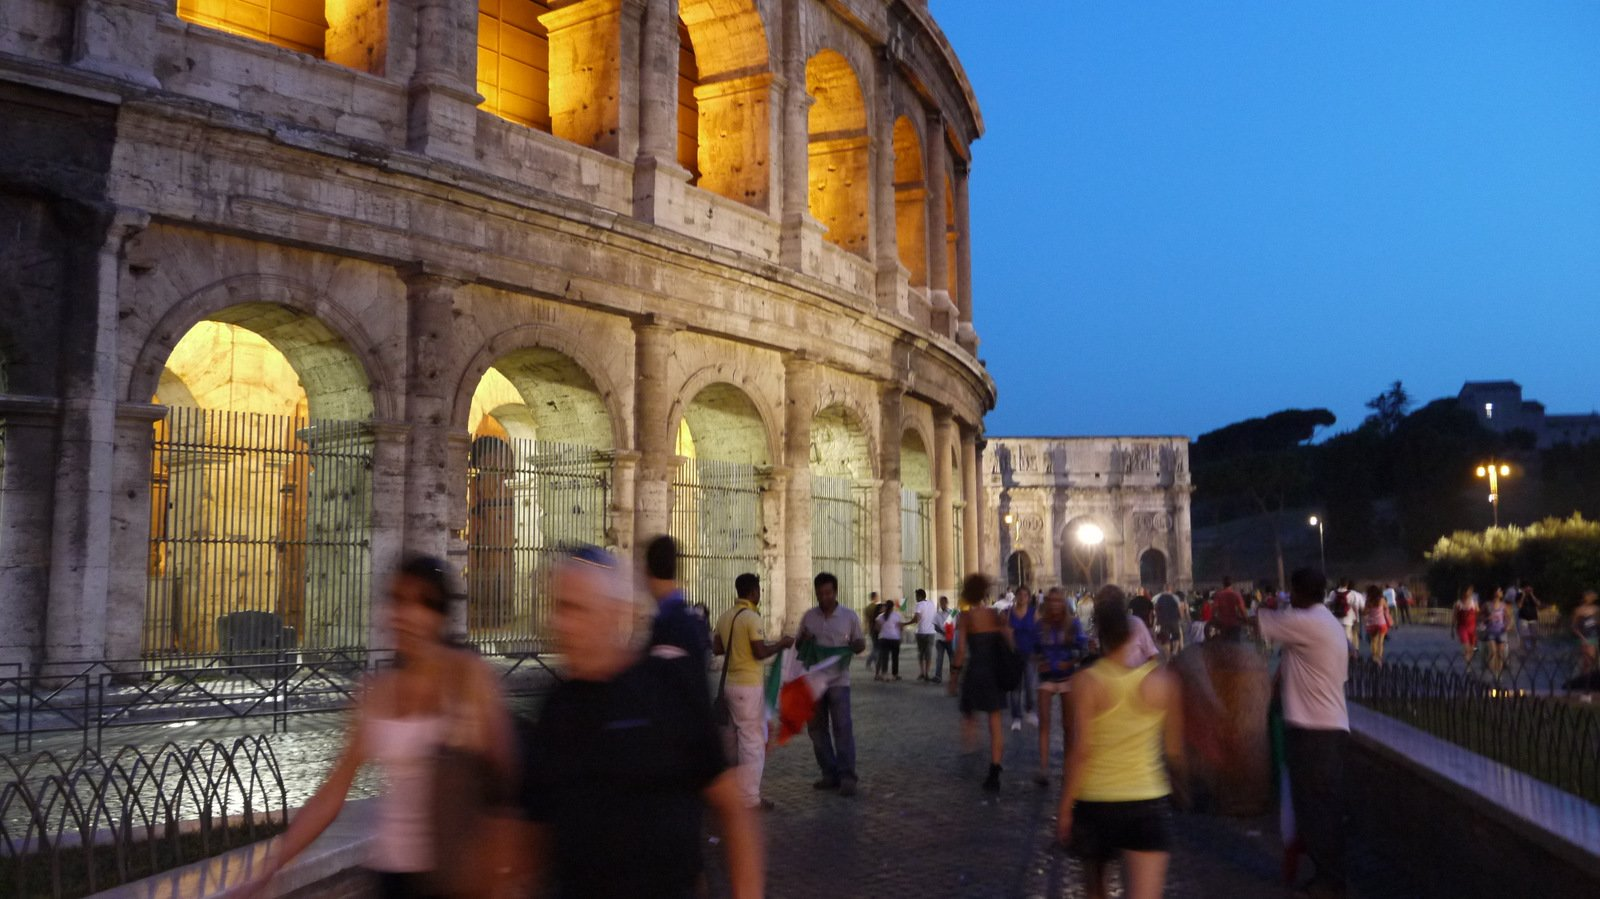 What's the best way to skip the lines at the Colosseum?